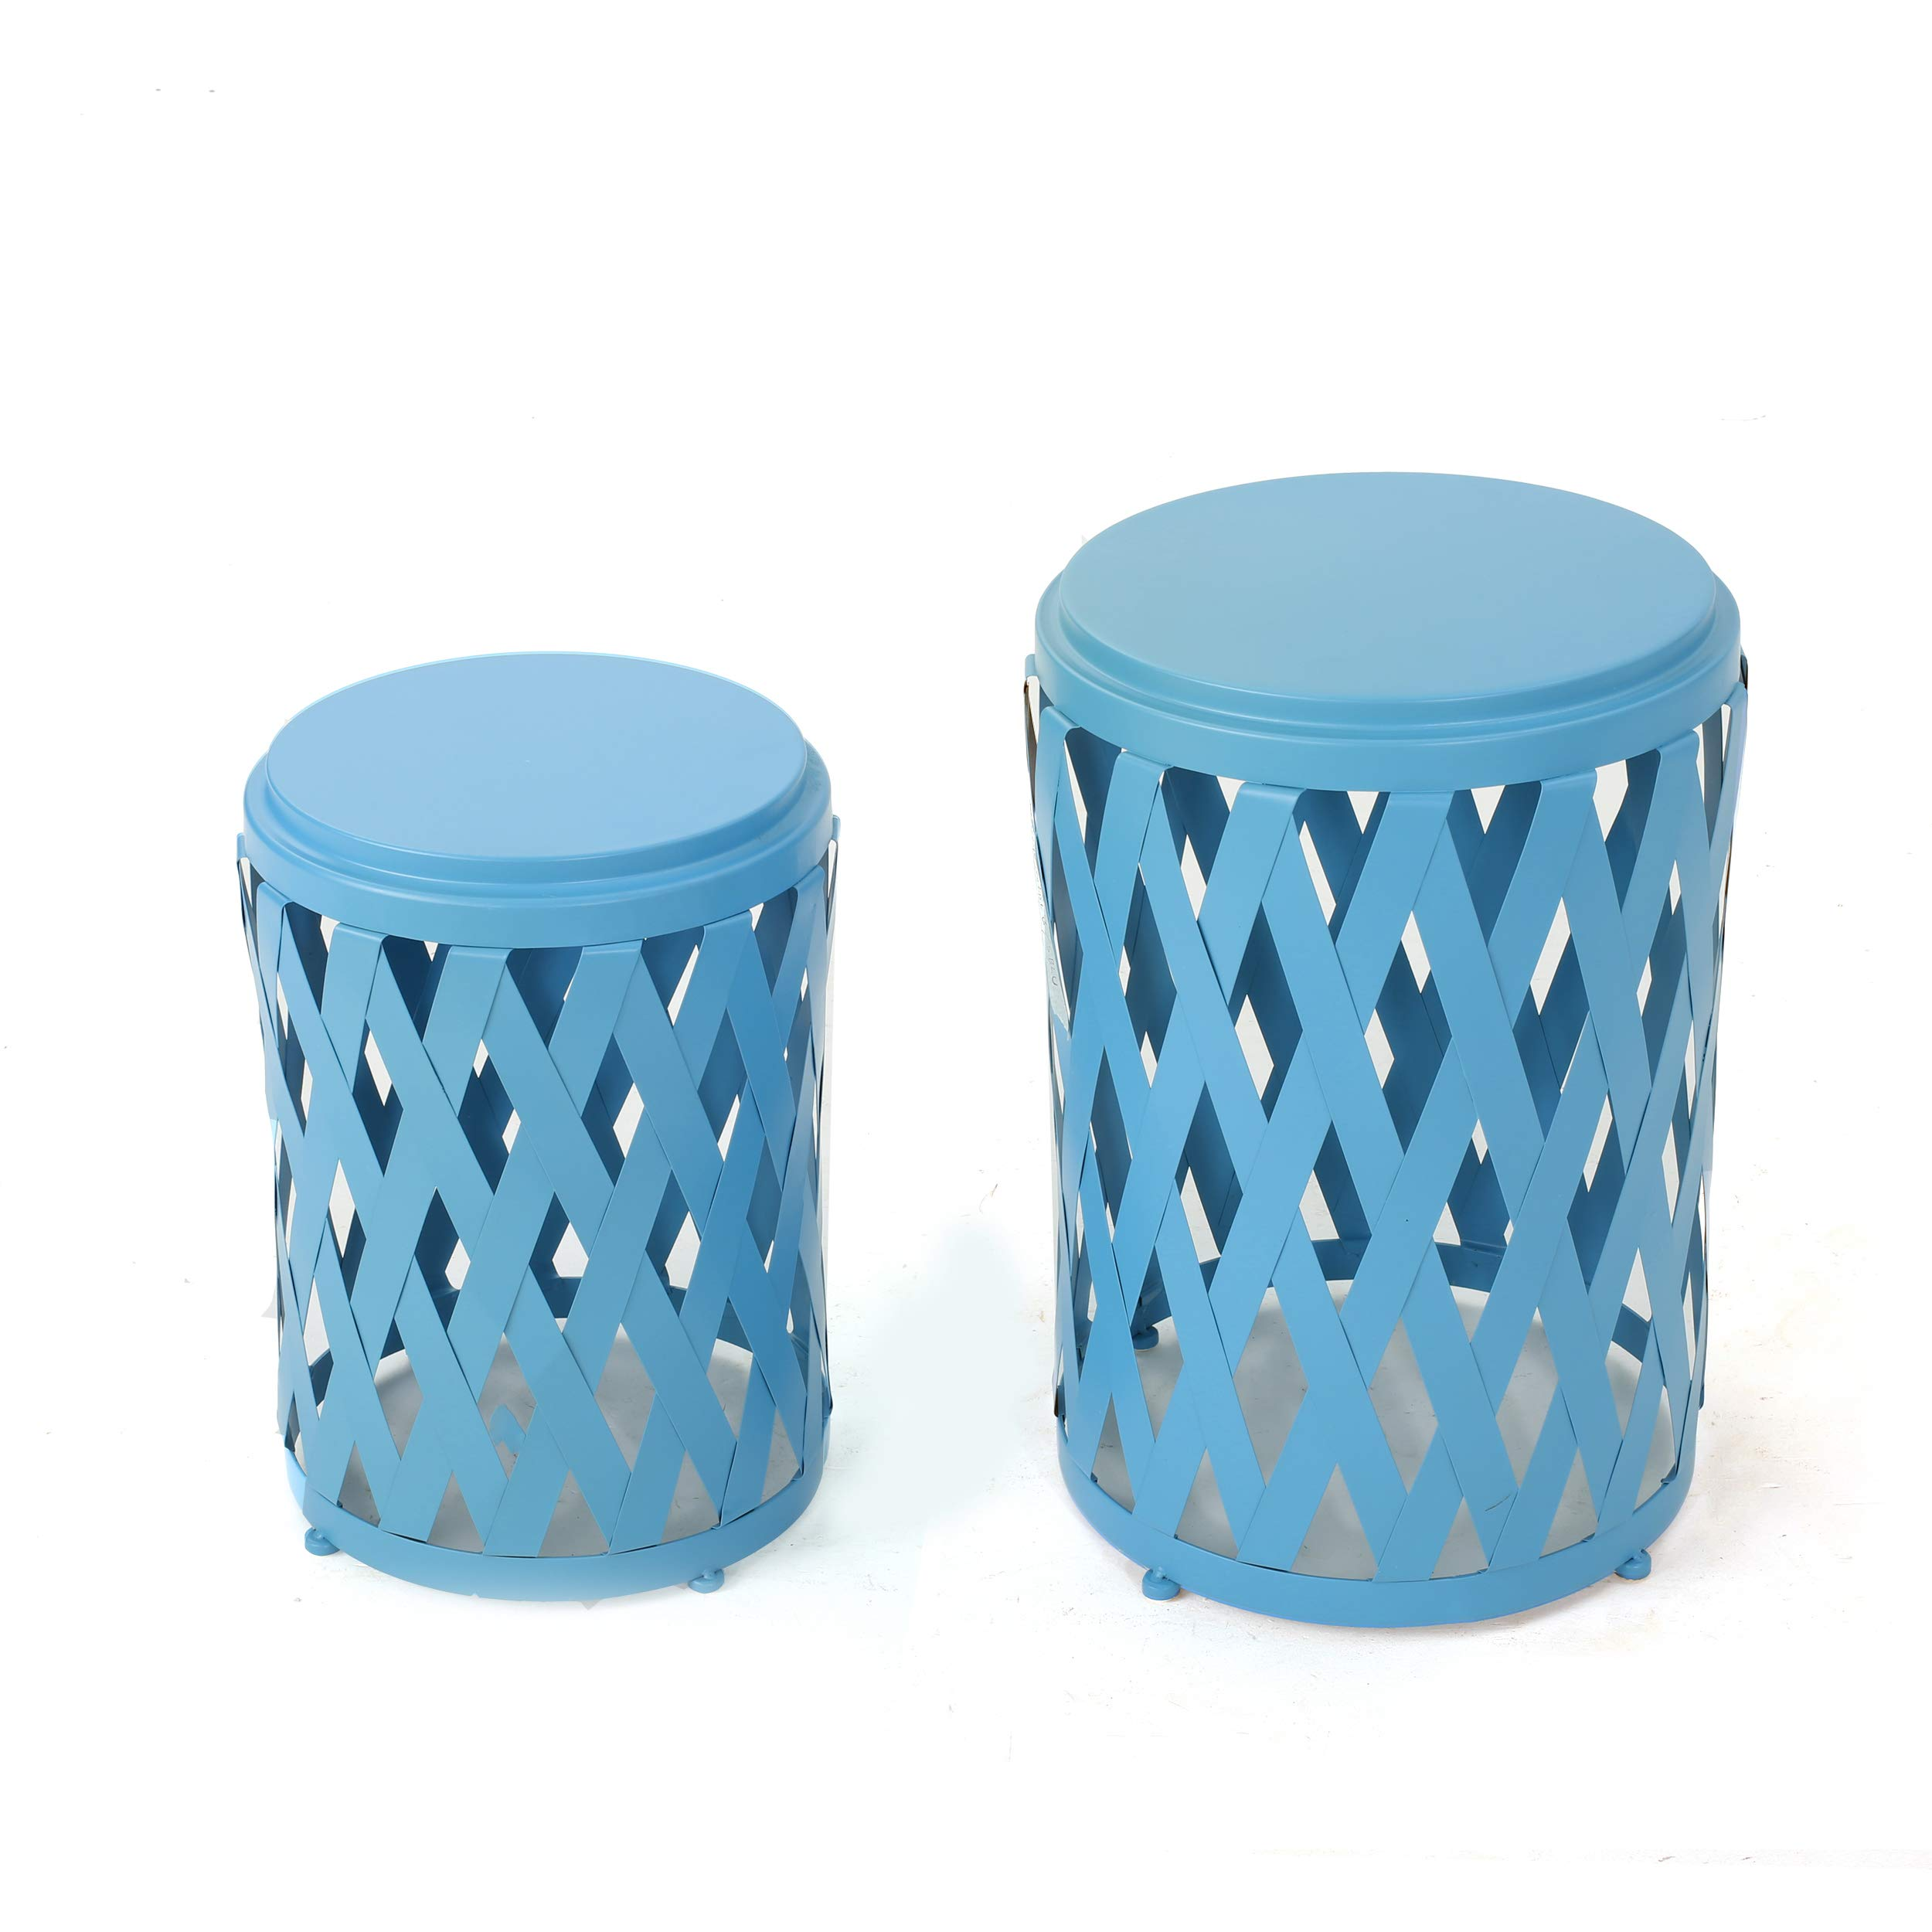 GDF Studio Ellen Nestable Outdoor Small and Large Iron Side Table Set (Set of 2) (Matte Blue)